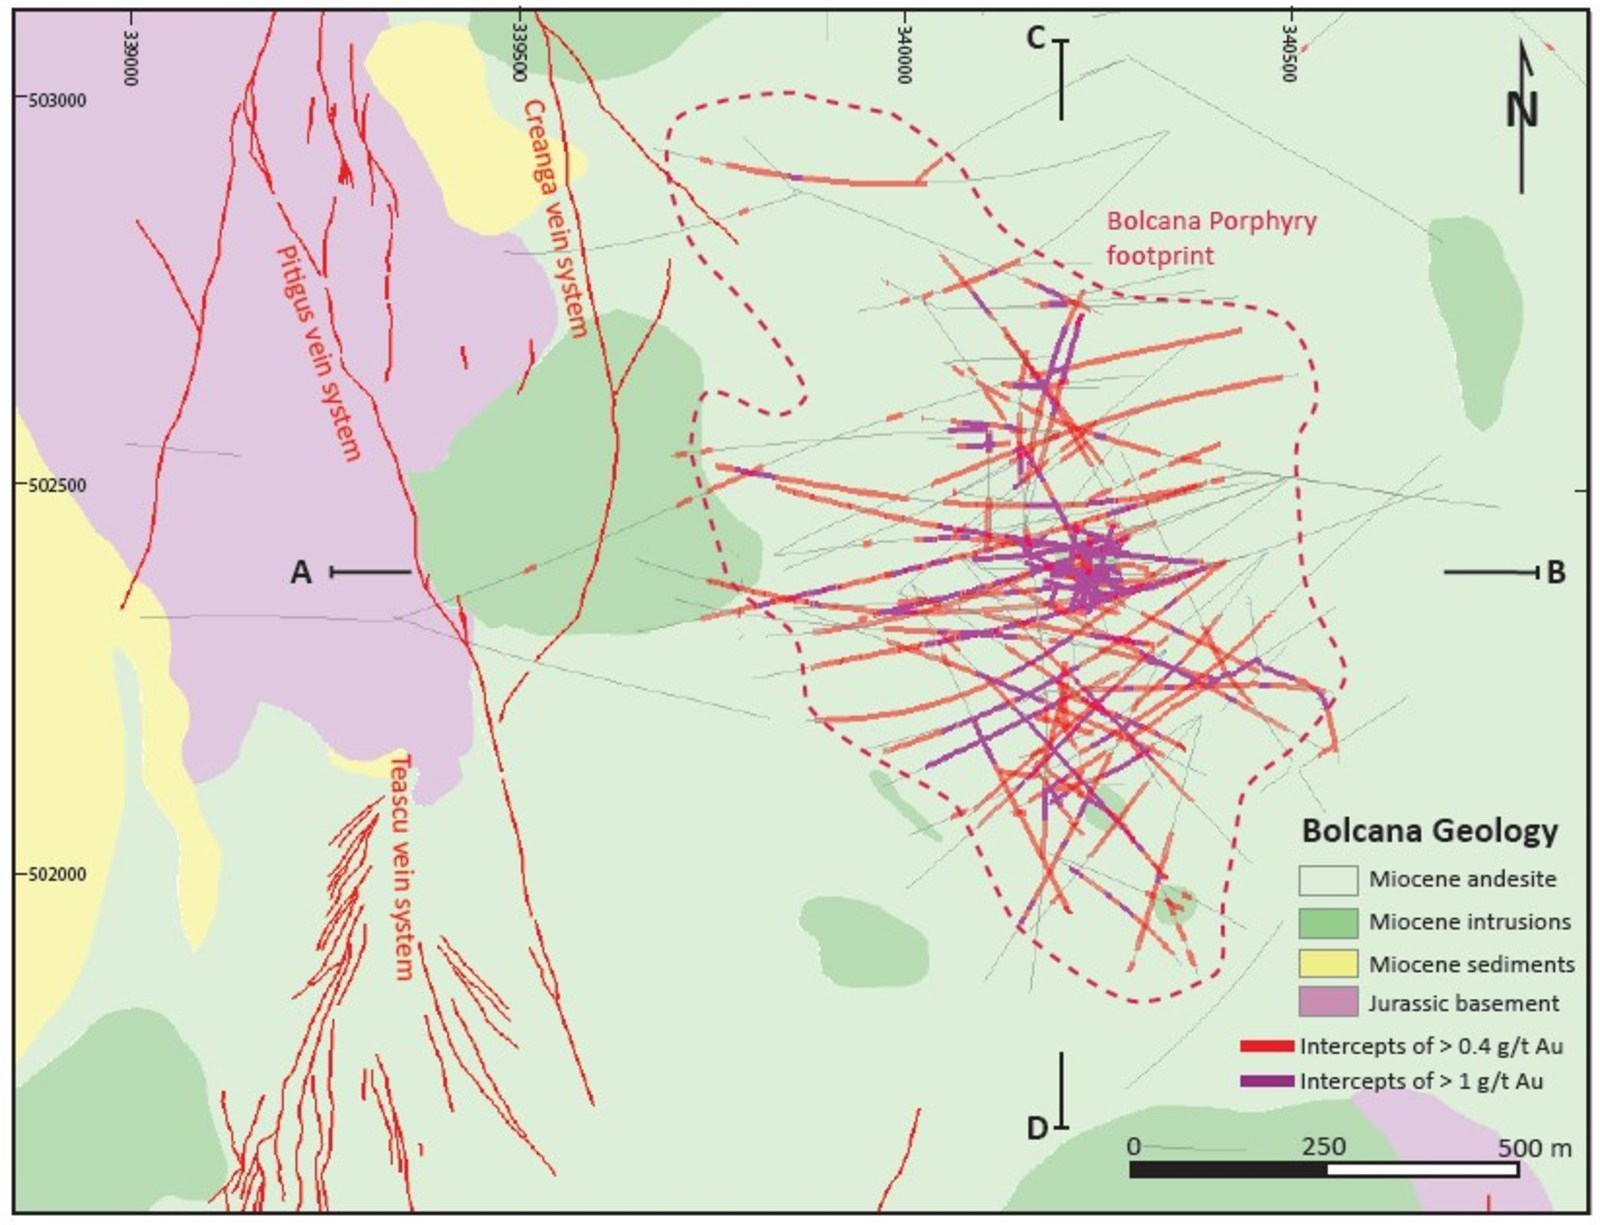 Figure 3: Geological map of the Bolcana Project area showing outline of the Au-Cu porphyry system and traces of drillholes completed in 2017 and 2018 programs.